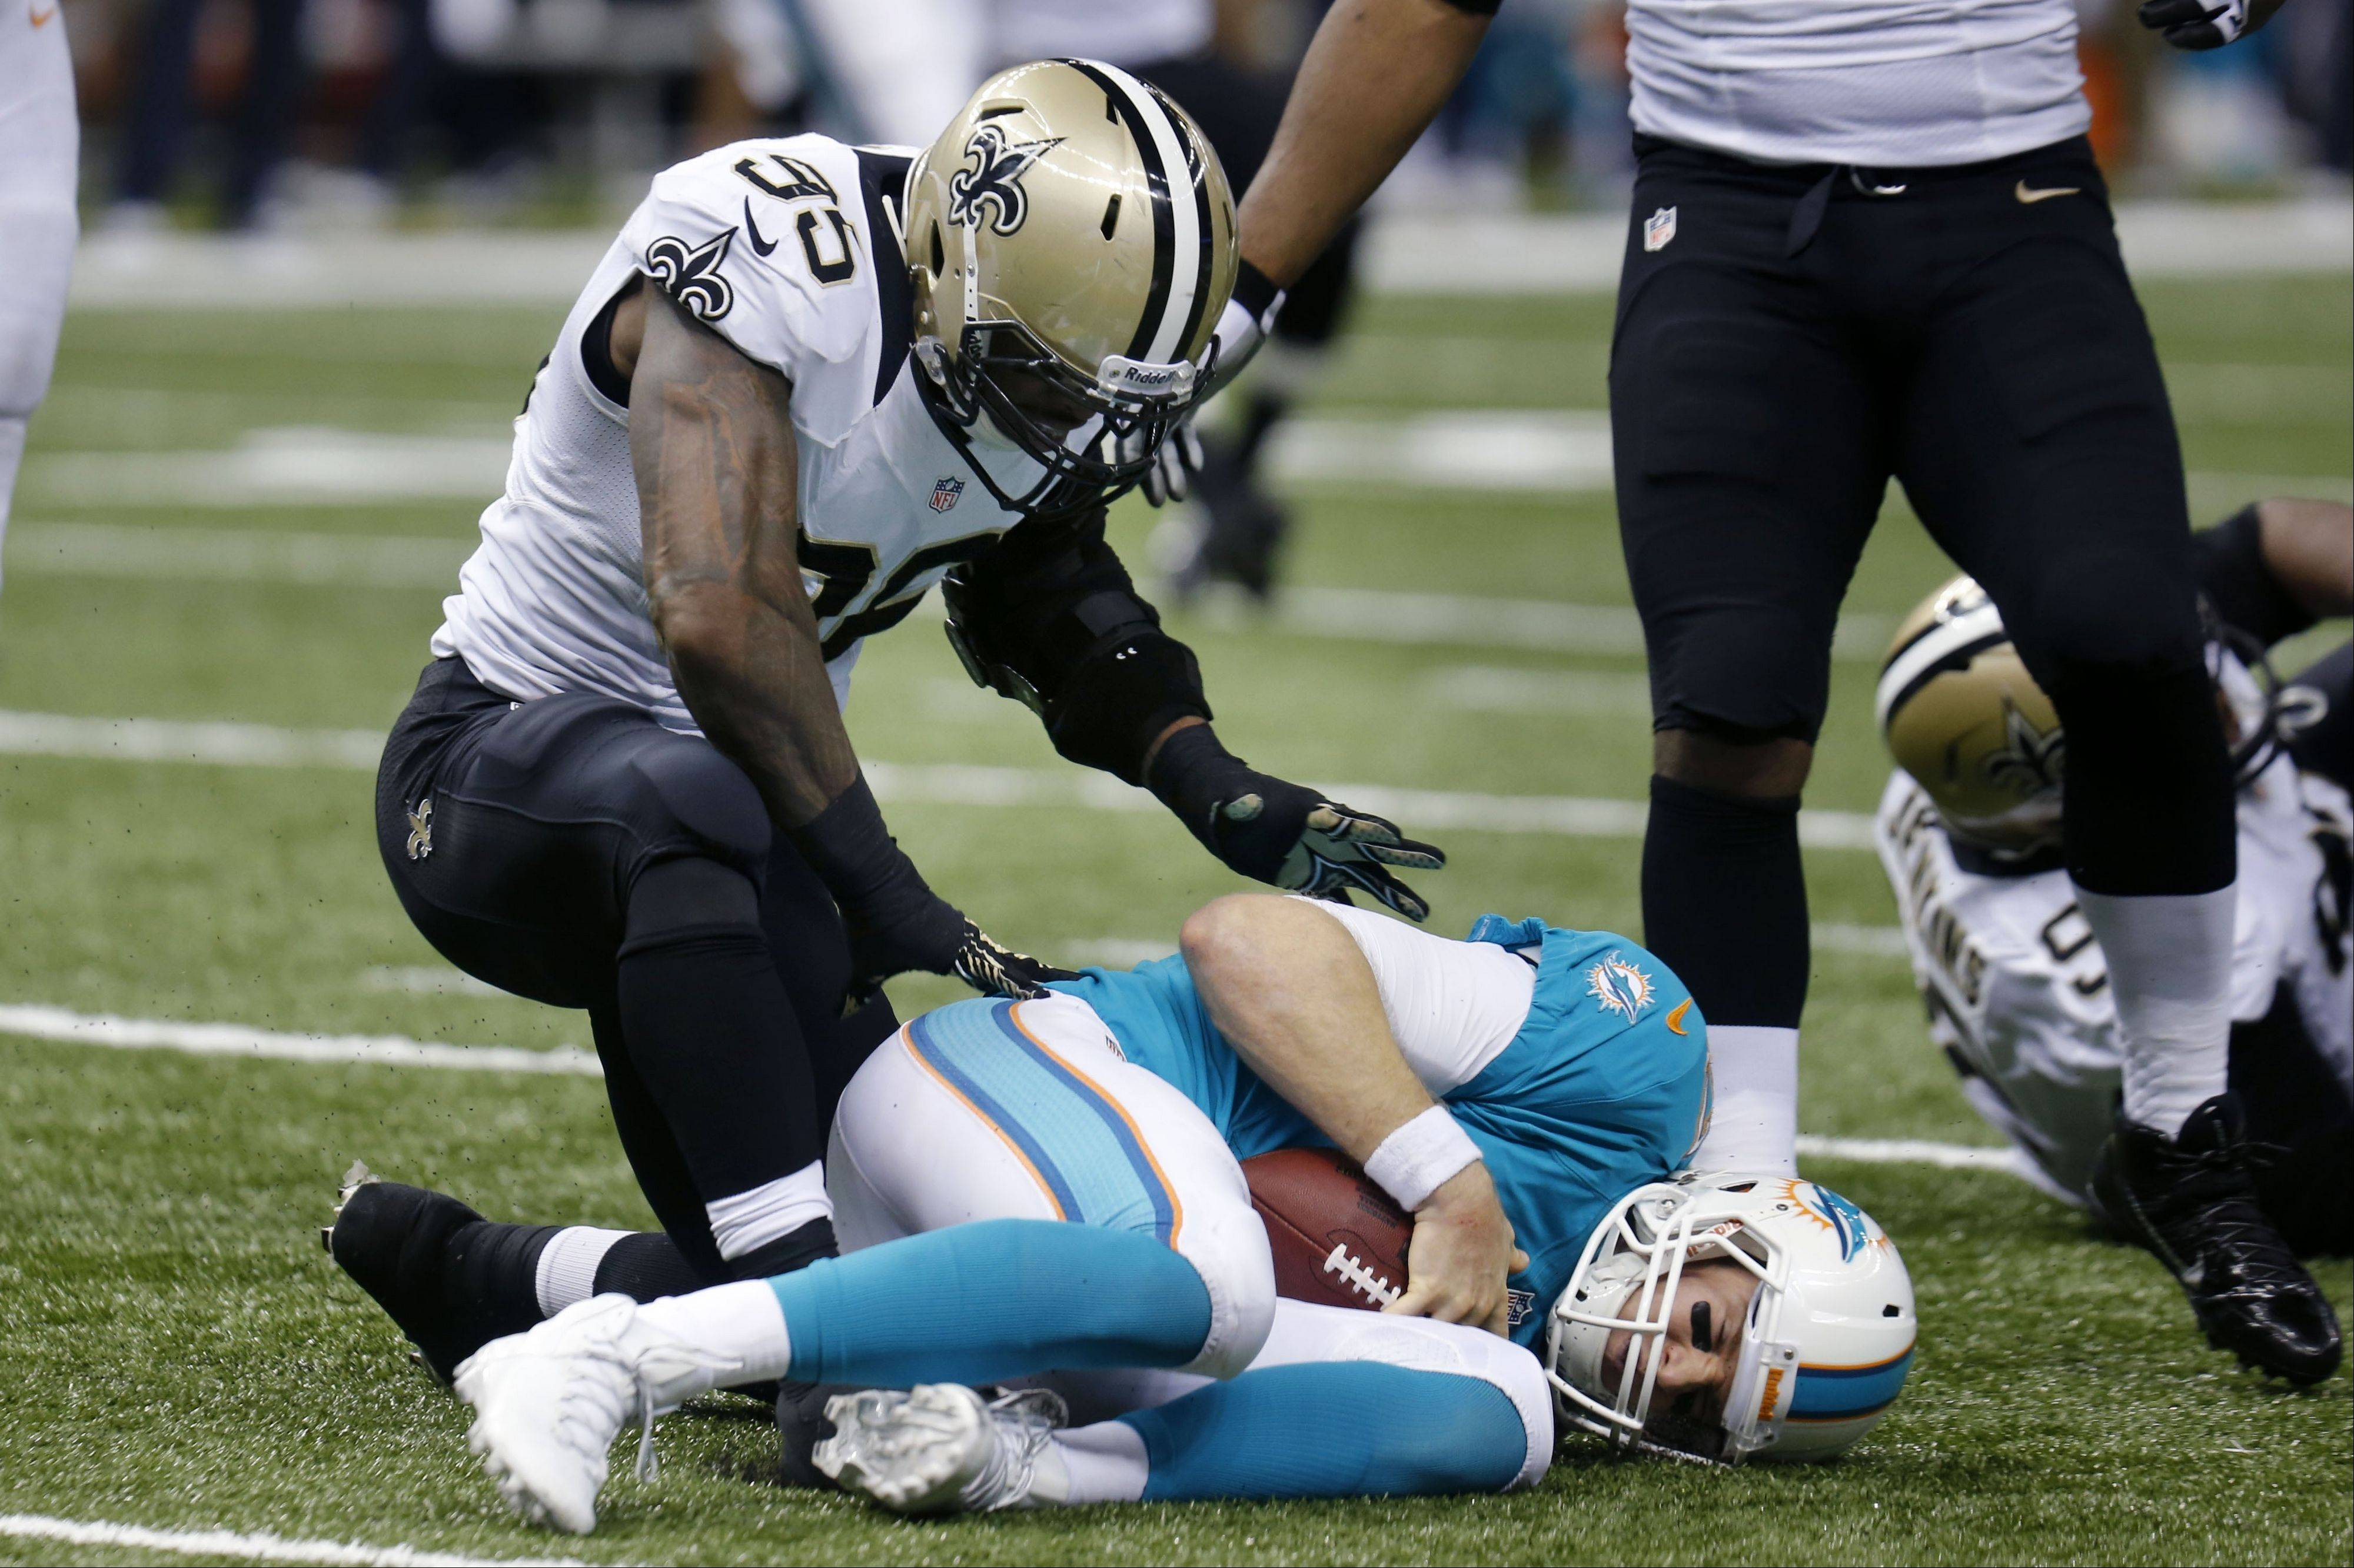 Miami Dolphins quarterback Ryan Tannehill lies on the turf after being sacked by Saints linebacker Martez Wilson (95) in the second half of Monday�s game in New Orleans.